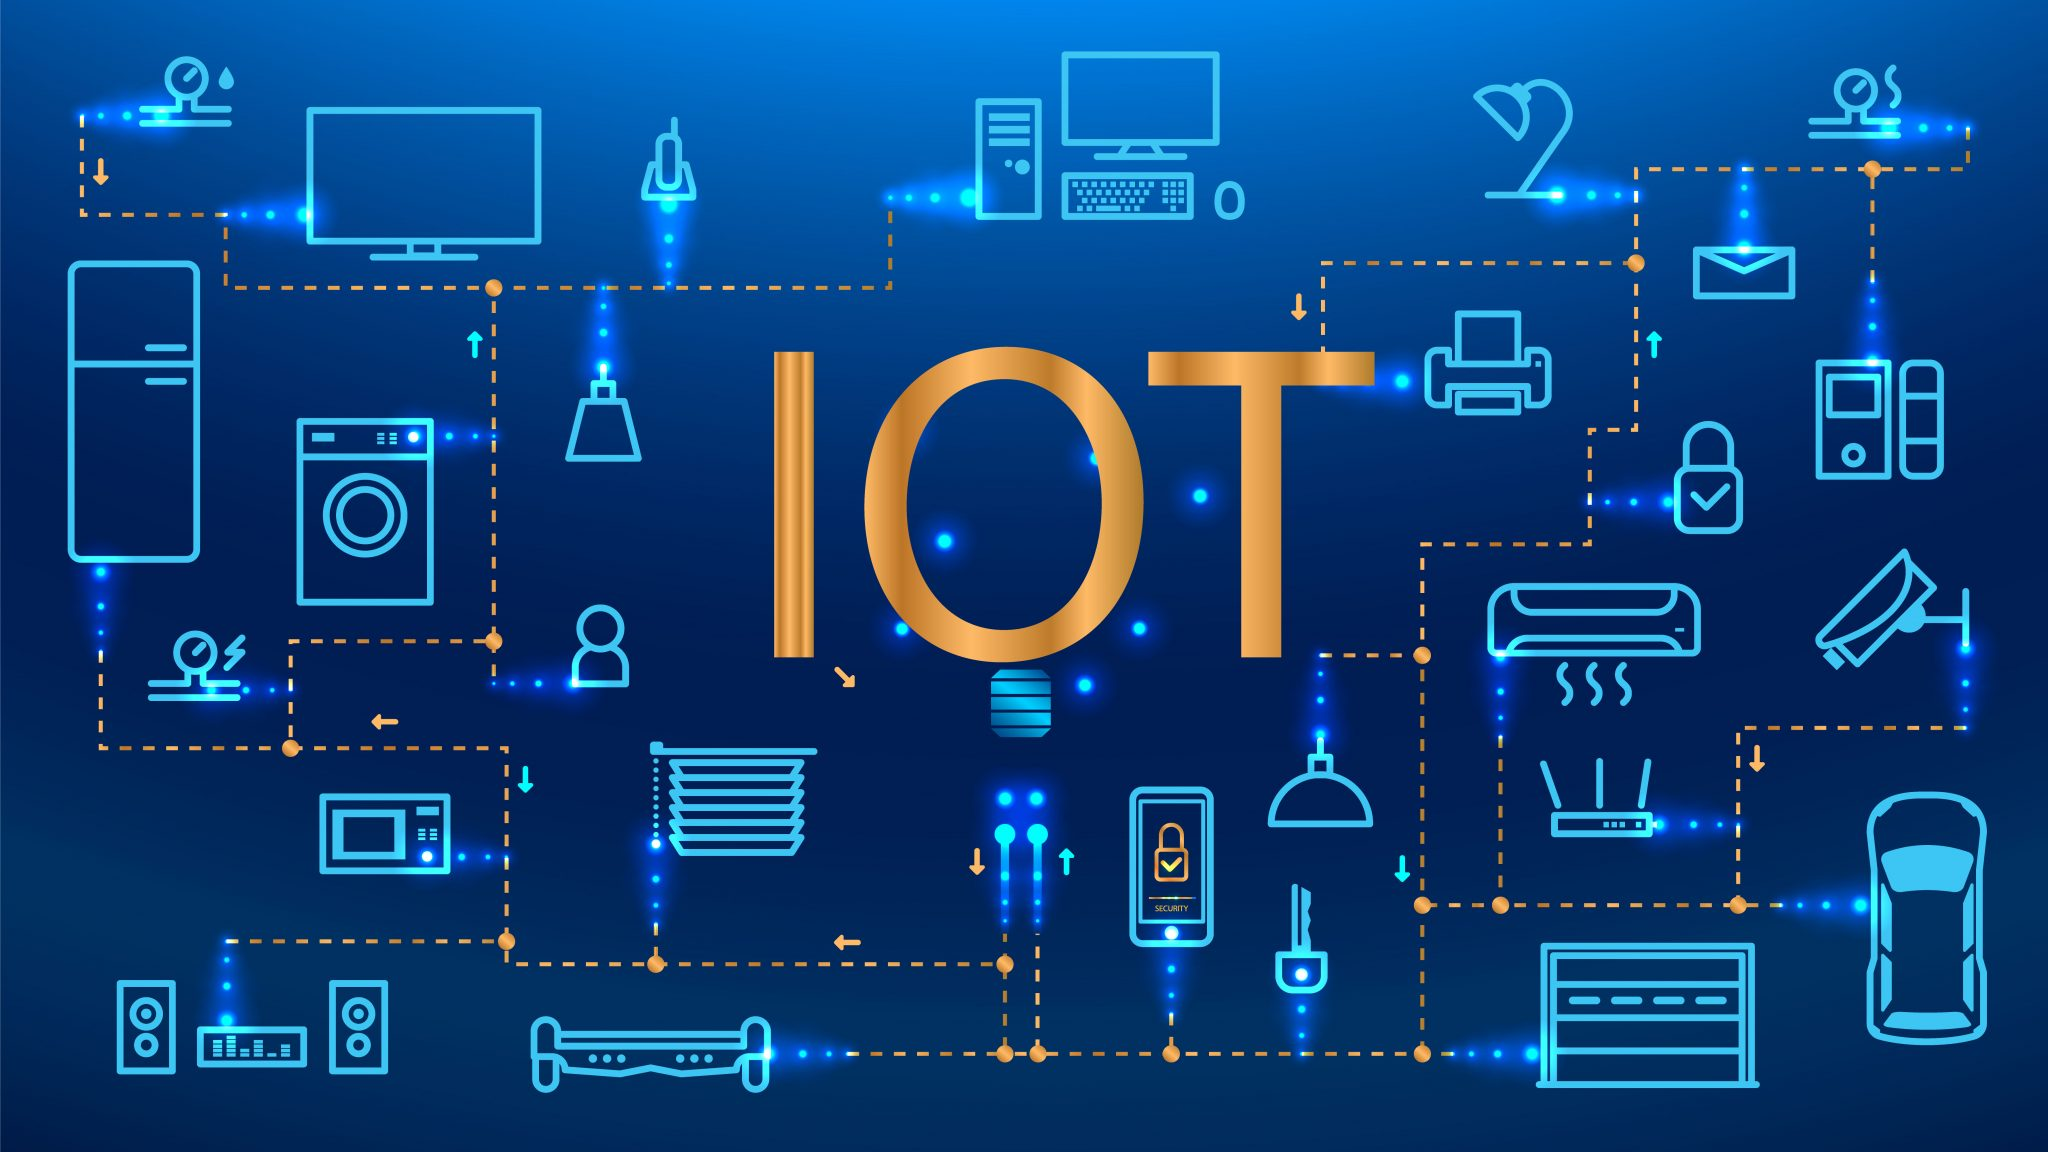 IoT Devices Market